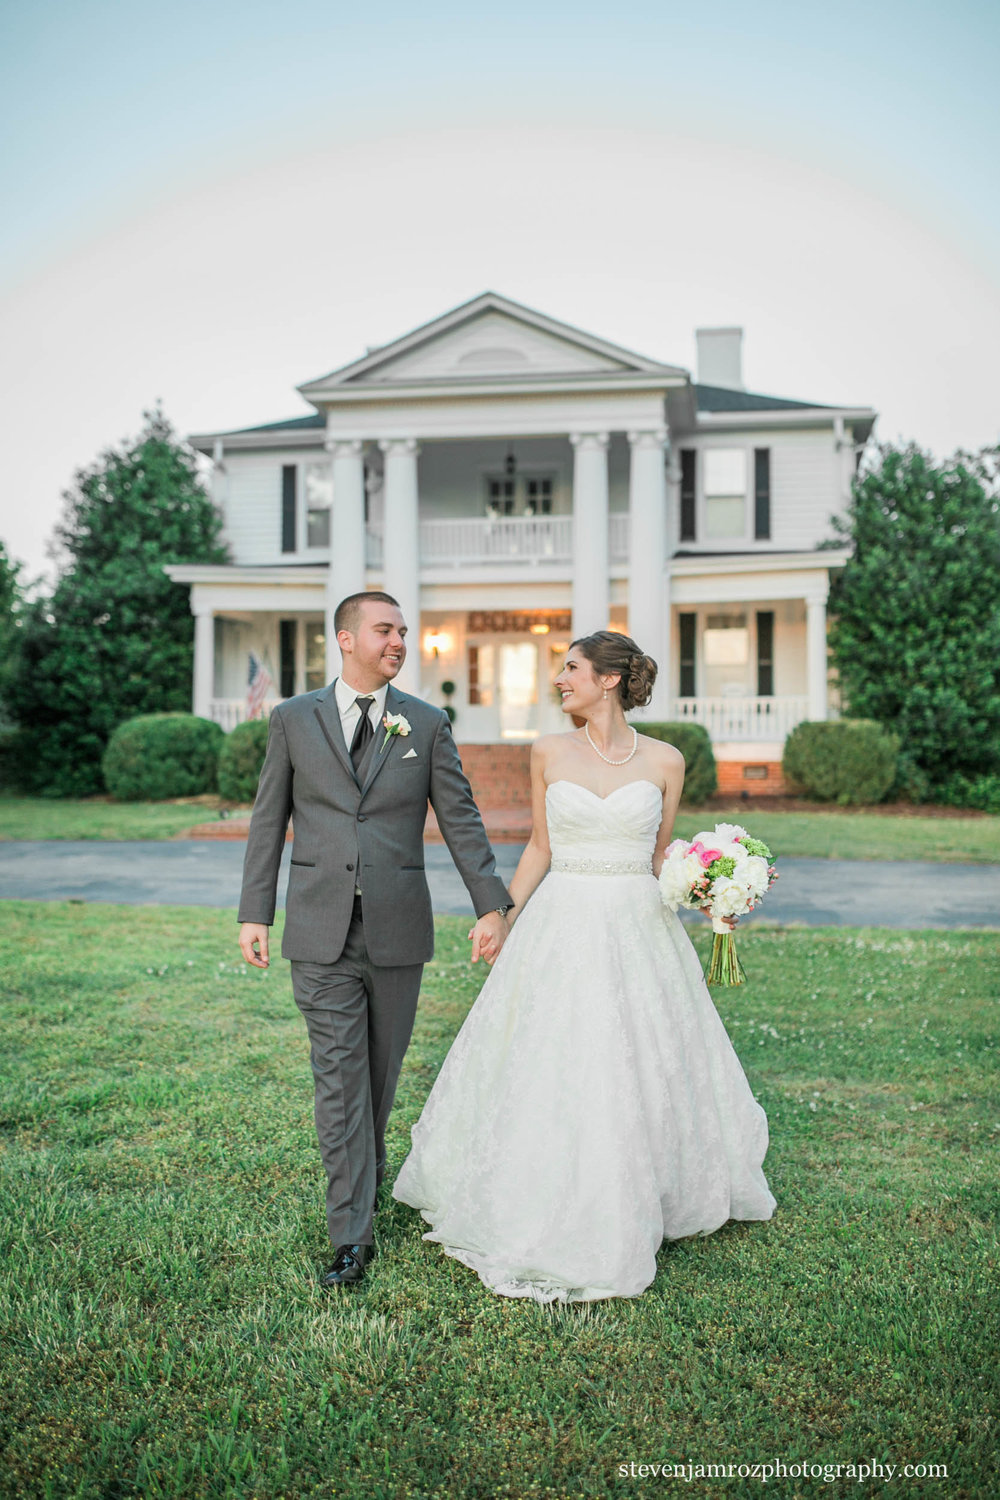 the-hudson-manor-wedding-louisburg-steven-jamroz-photography-0057.jpg